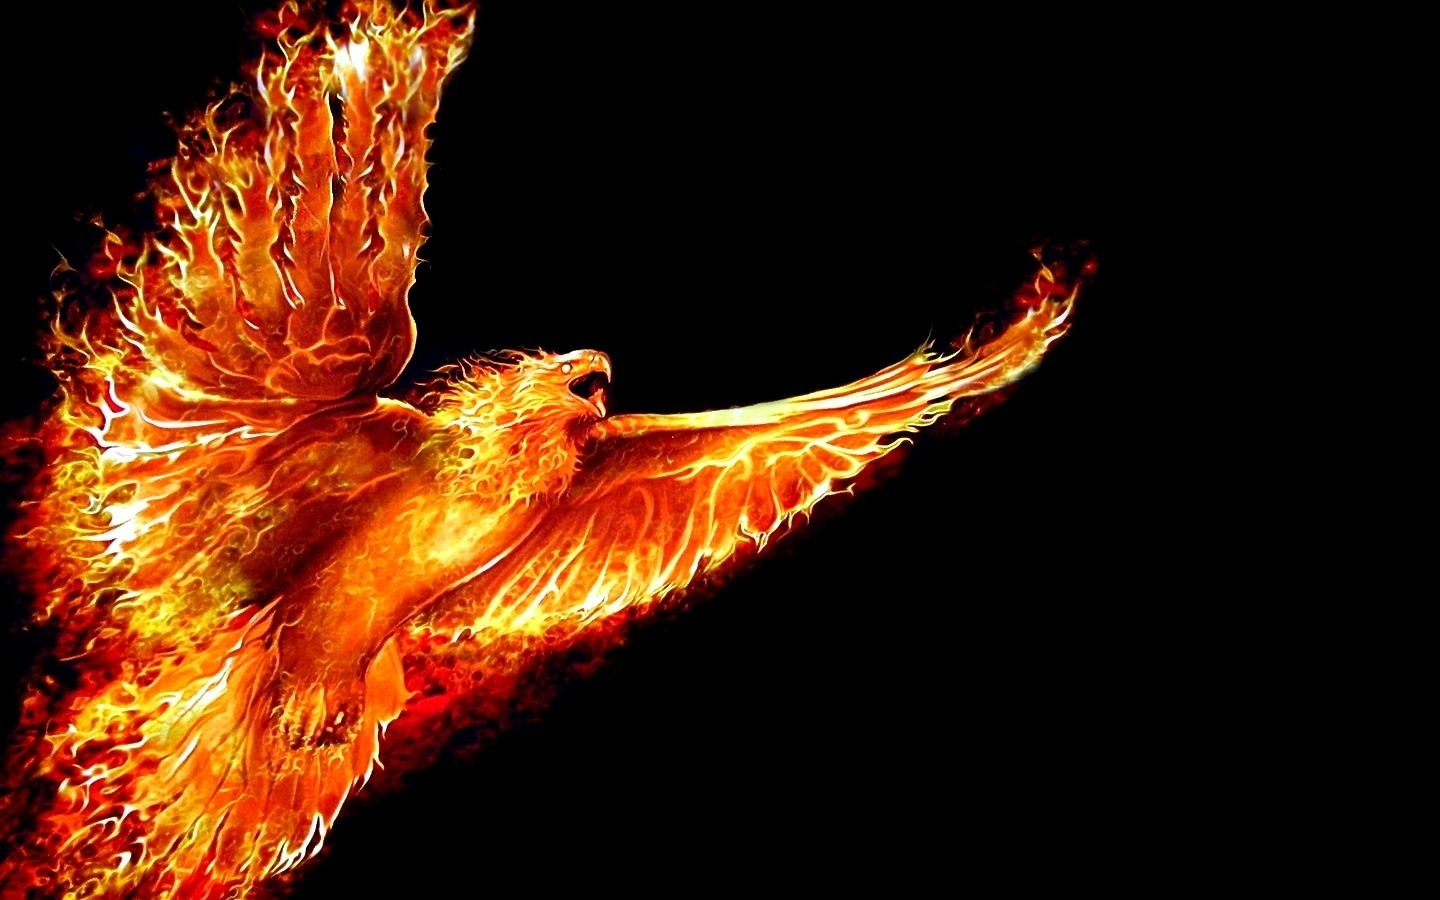 phoenix bird rising from the ashes - google search | fantasy